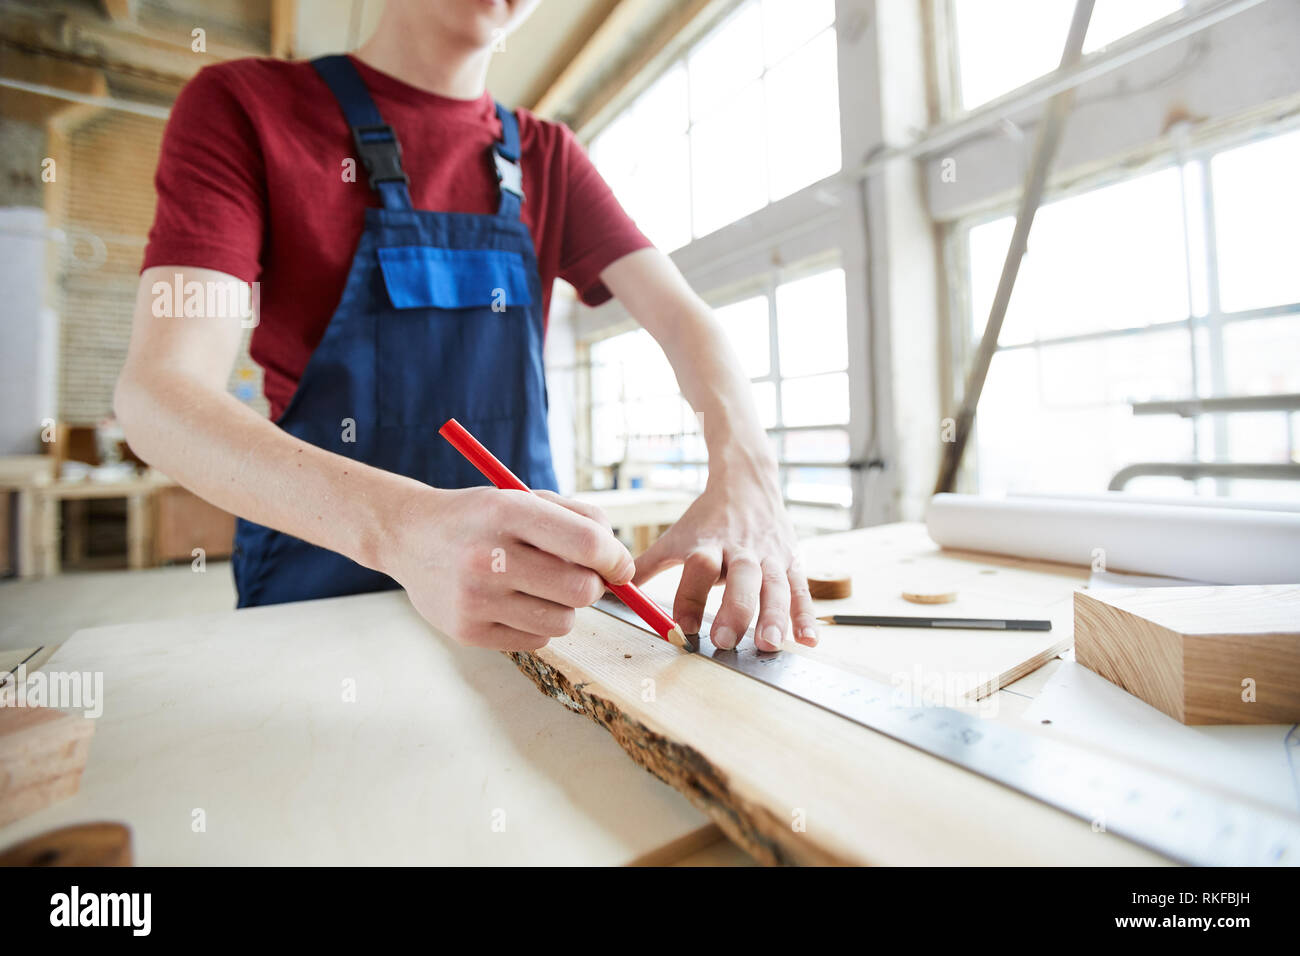 Making marks on wooden plank Stock Photo